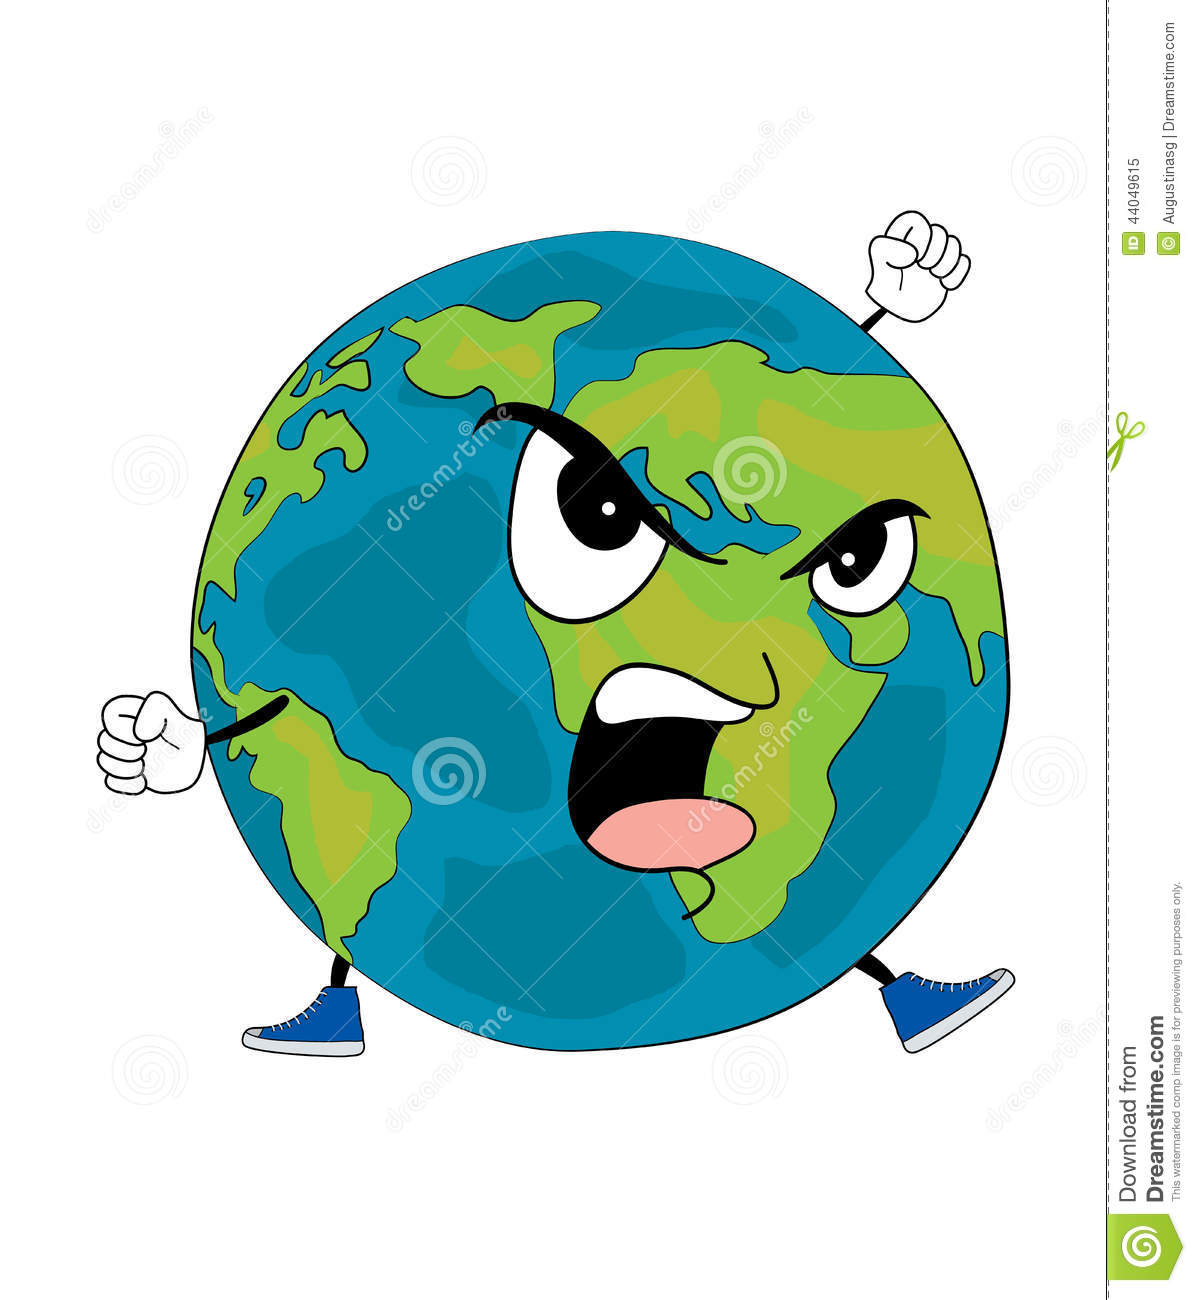 Angry World Globe Cartoon Stock Illustration - Image: 44049615